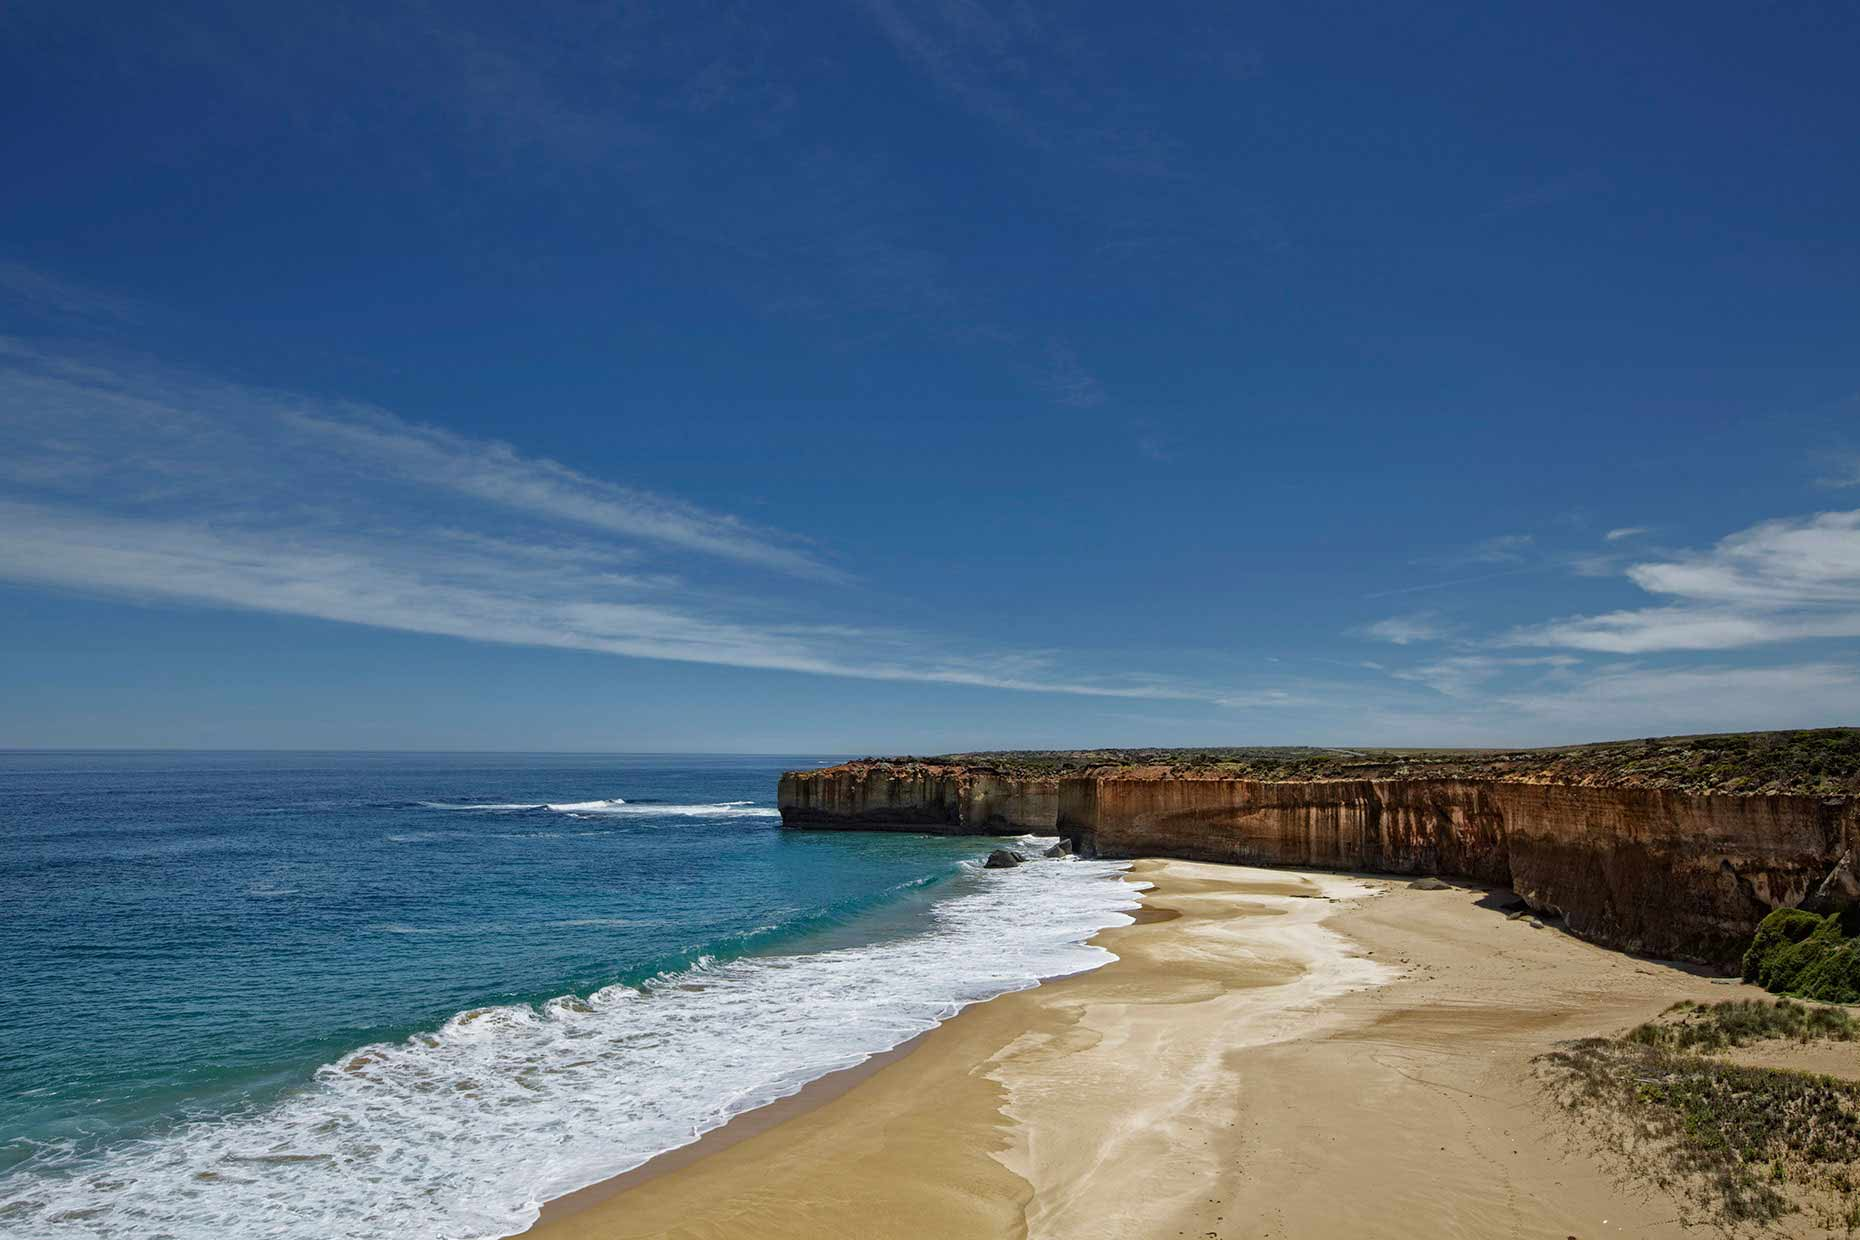 australie-down-under-great-ocean-road-12-apostles_landscape.jpg